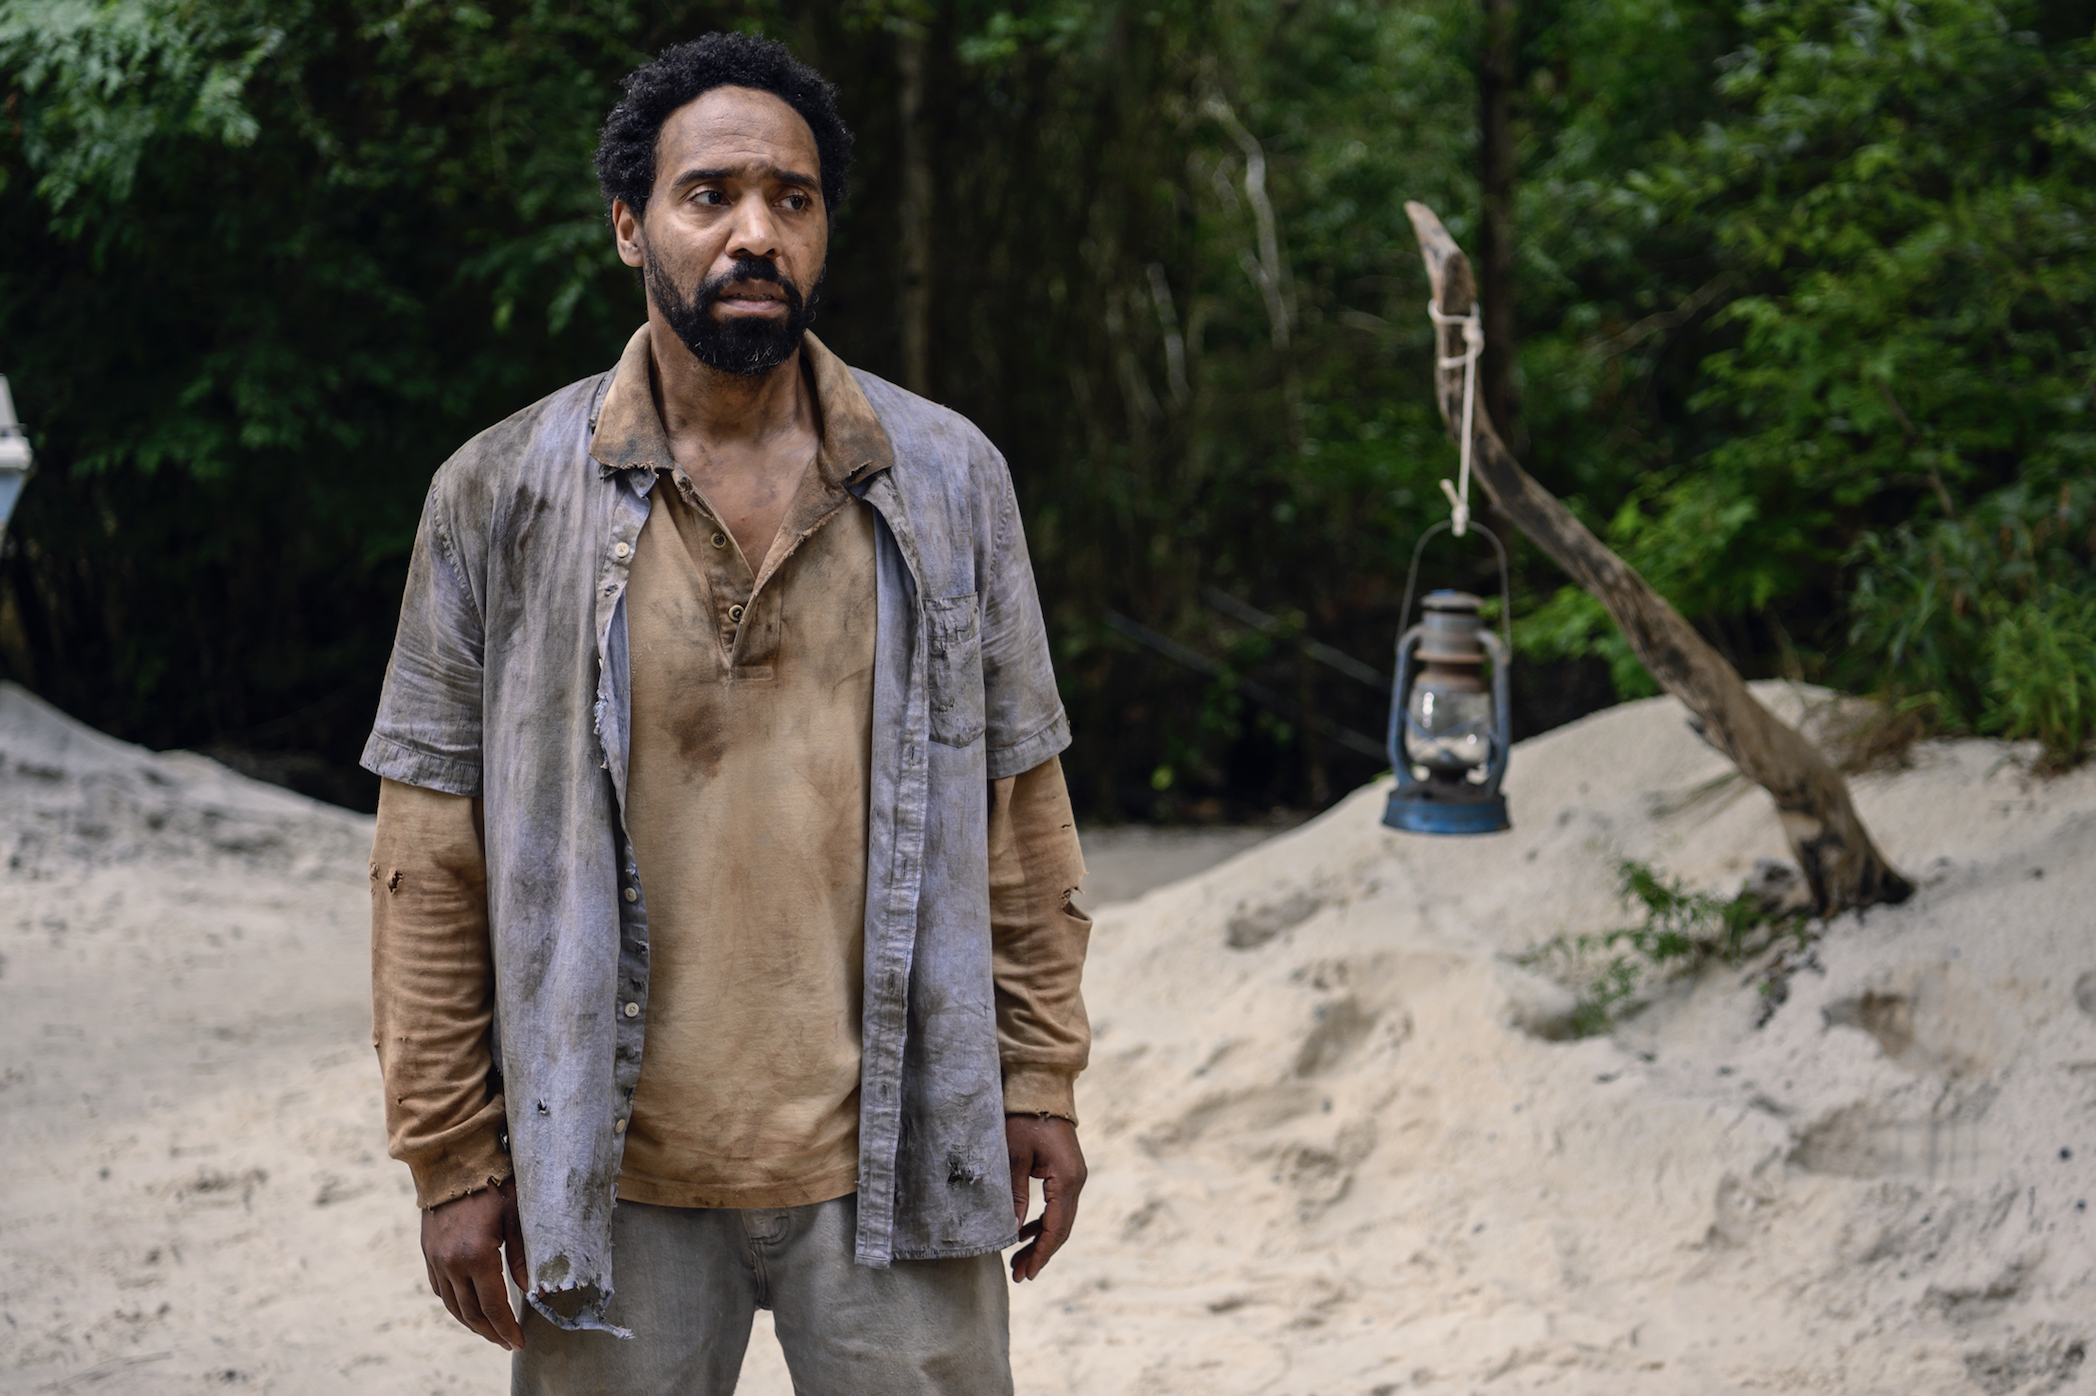 The Walking Dead season 10 unveils first look at new character Virgil